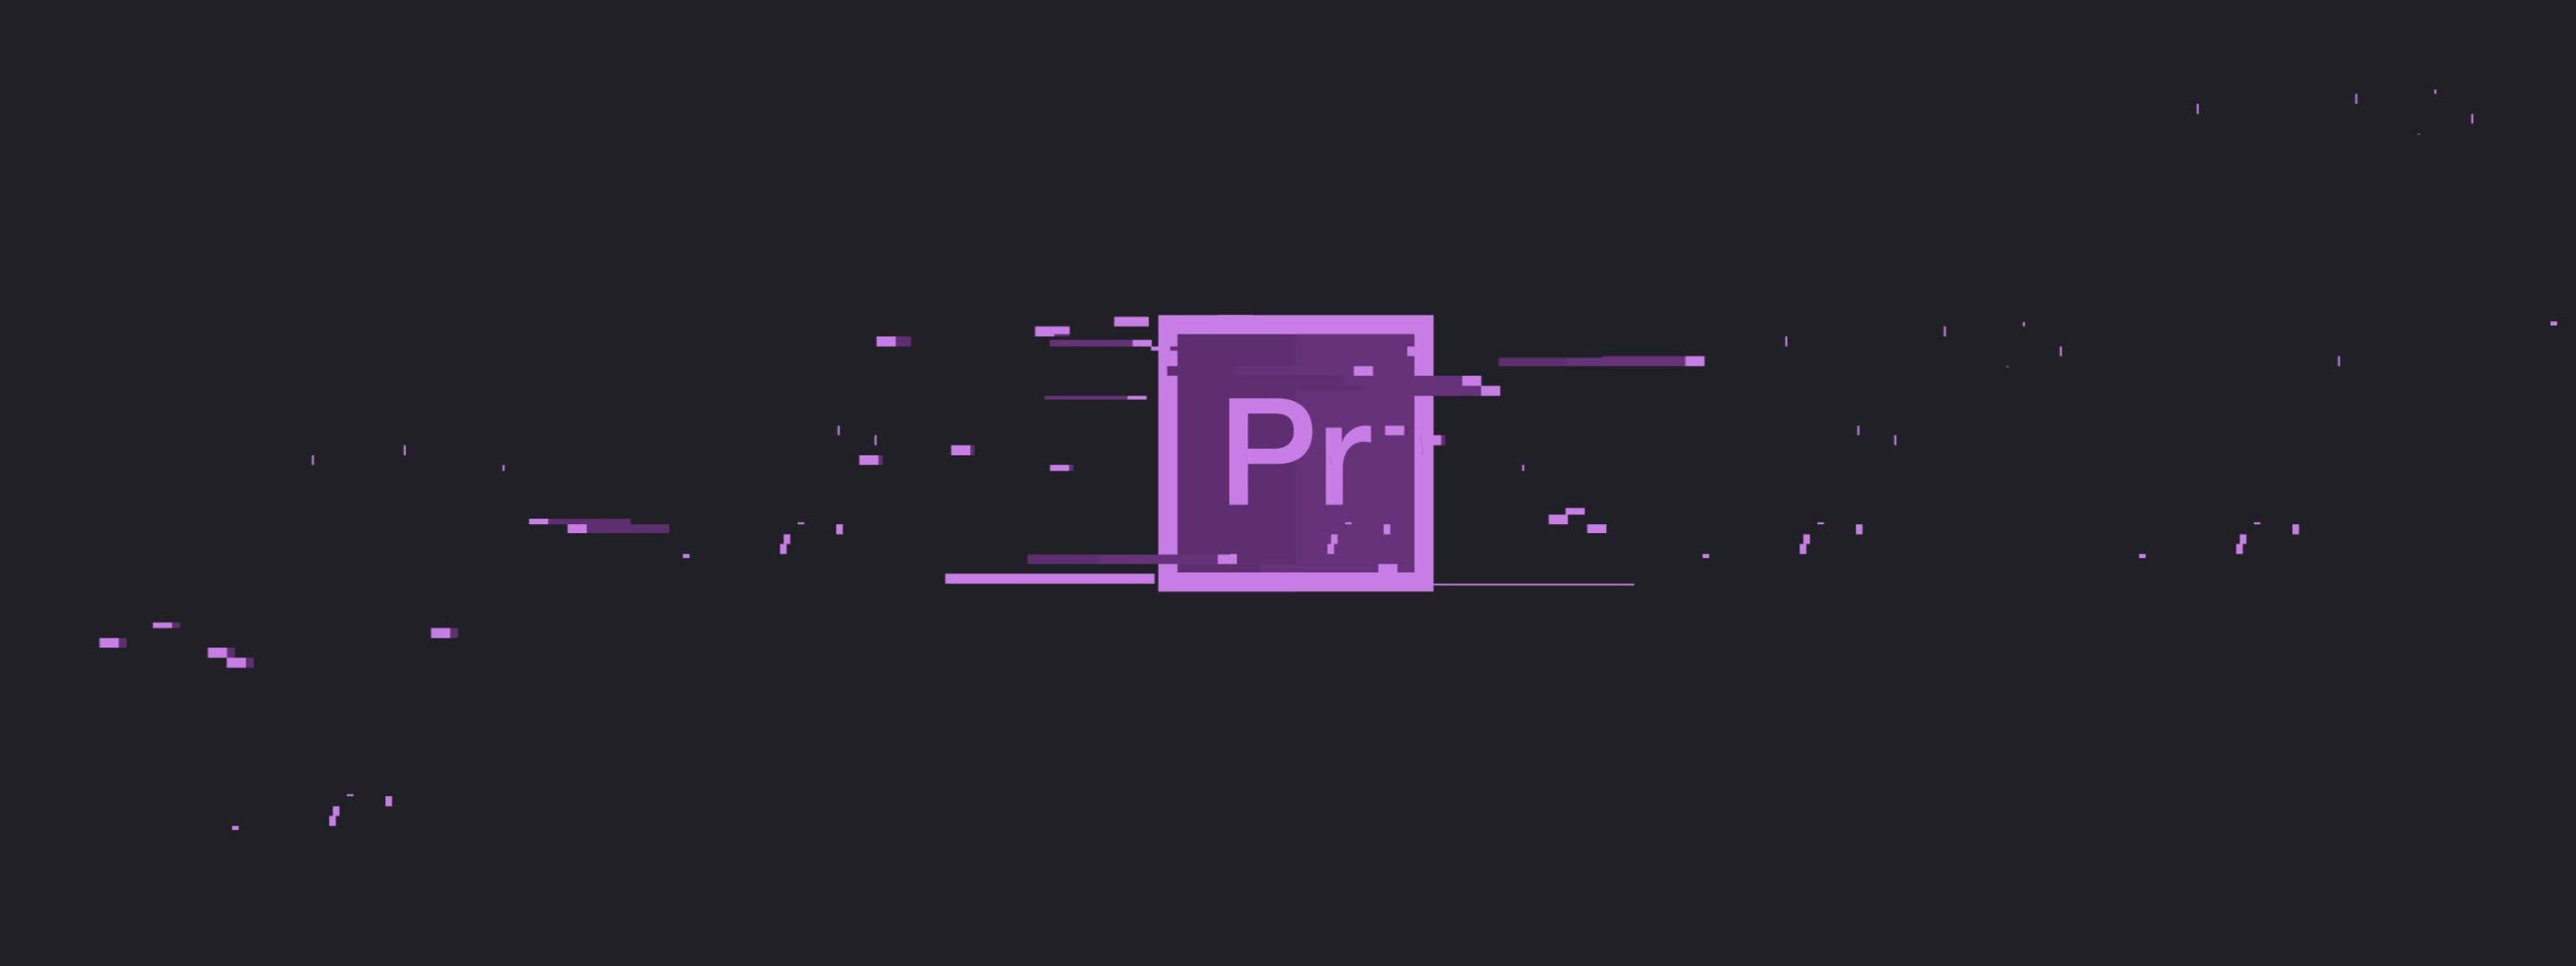 download free premiere pro and after effects templates stock music video